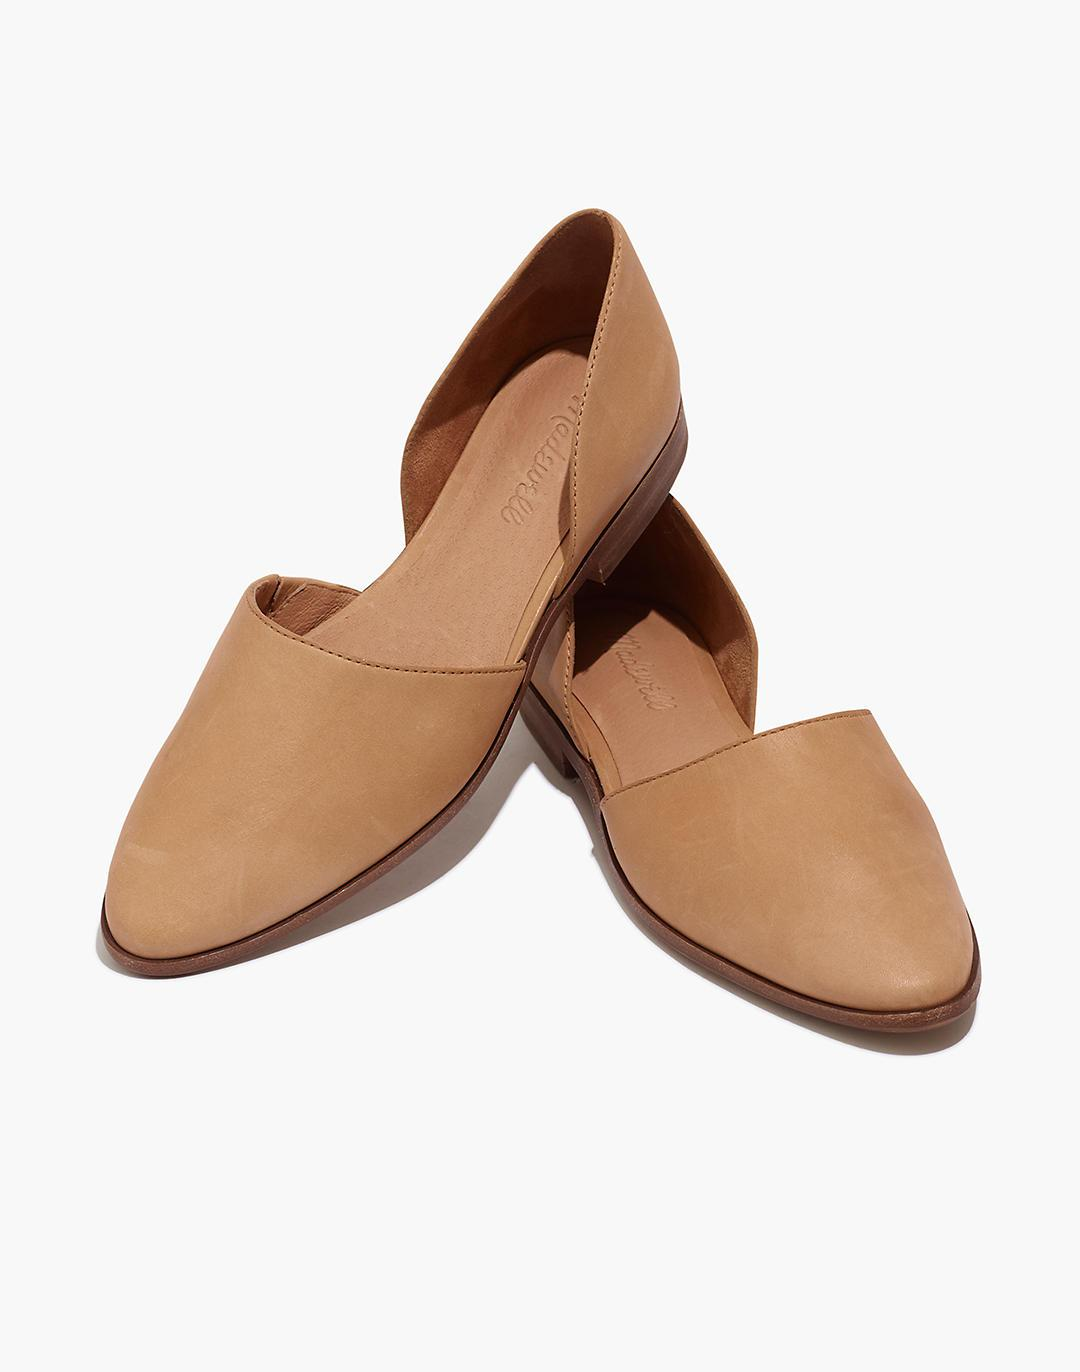 The Marisa d'Orsay Flat in Leather